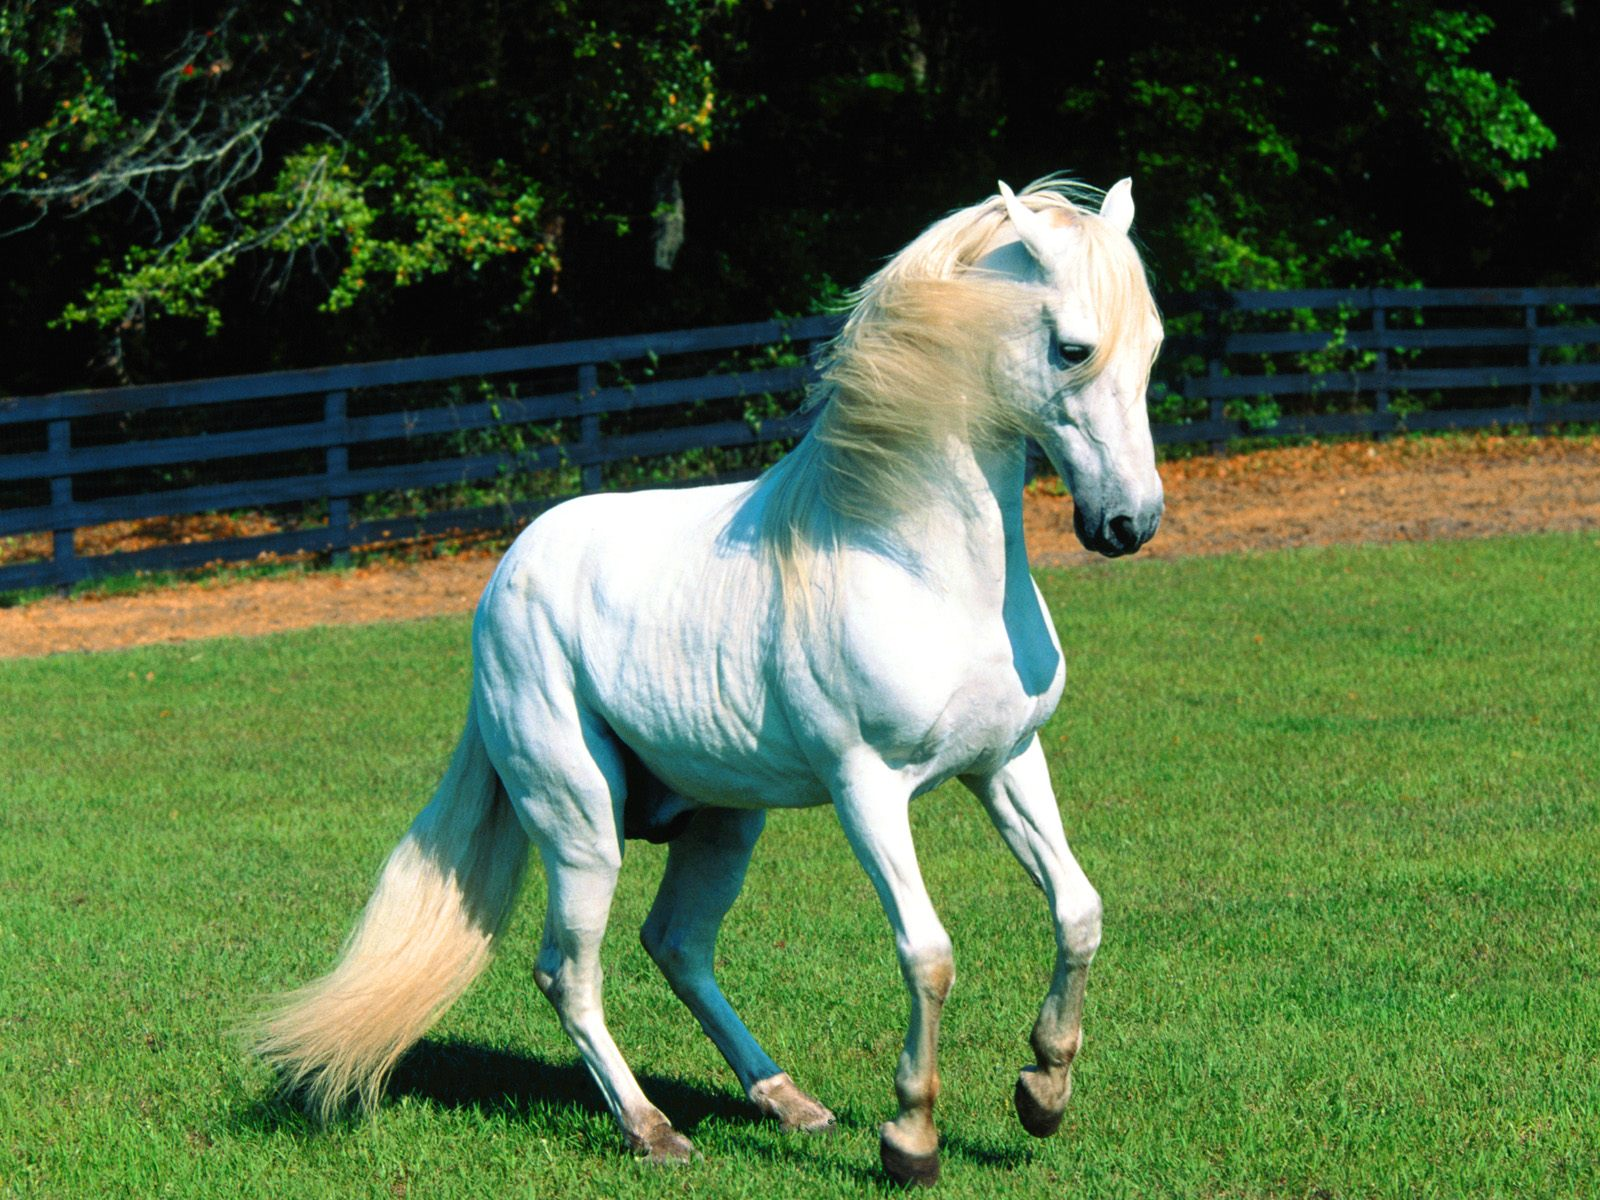 Amazing   Wallpaper Horse Nature - animal+horse+wallpaper+free+1080p  Collection_46378.jpg